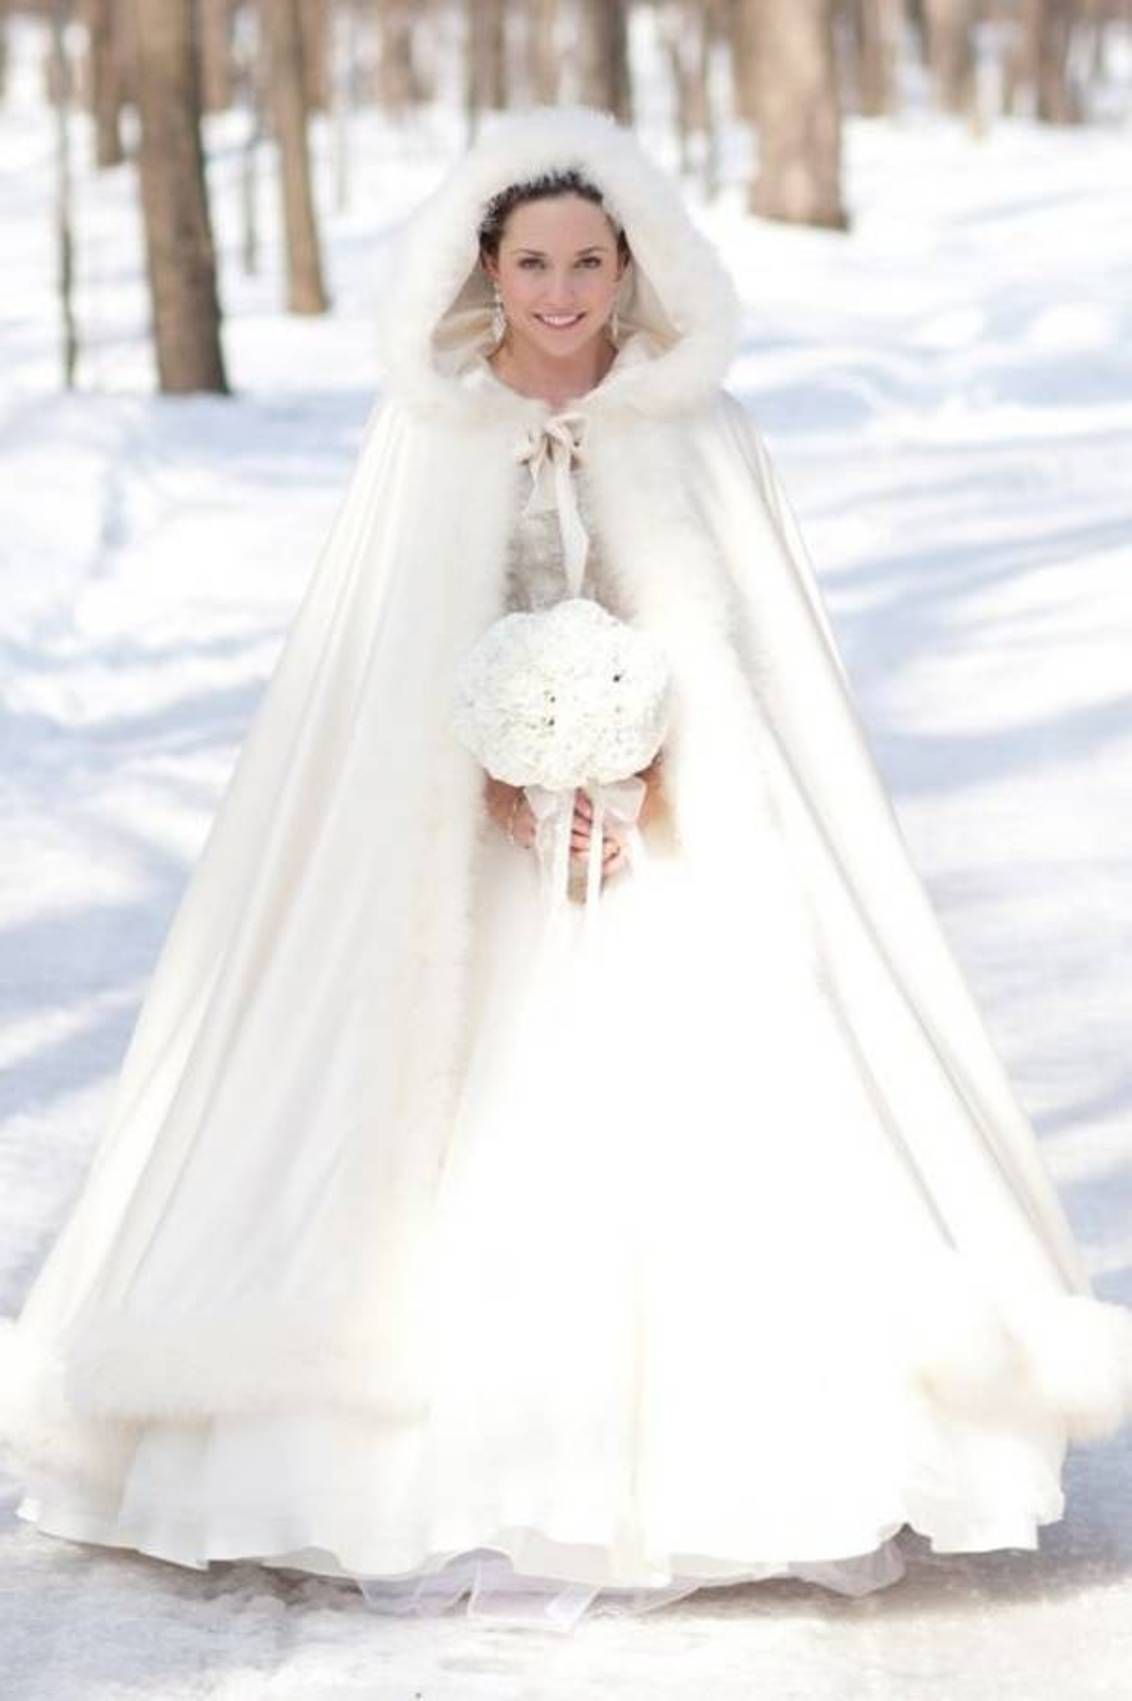 Fabulous Bridal Gowns For Winter Weddings | Winter weddings ...